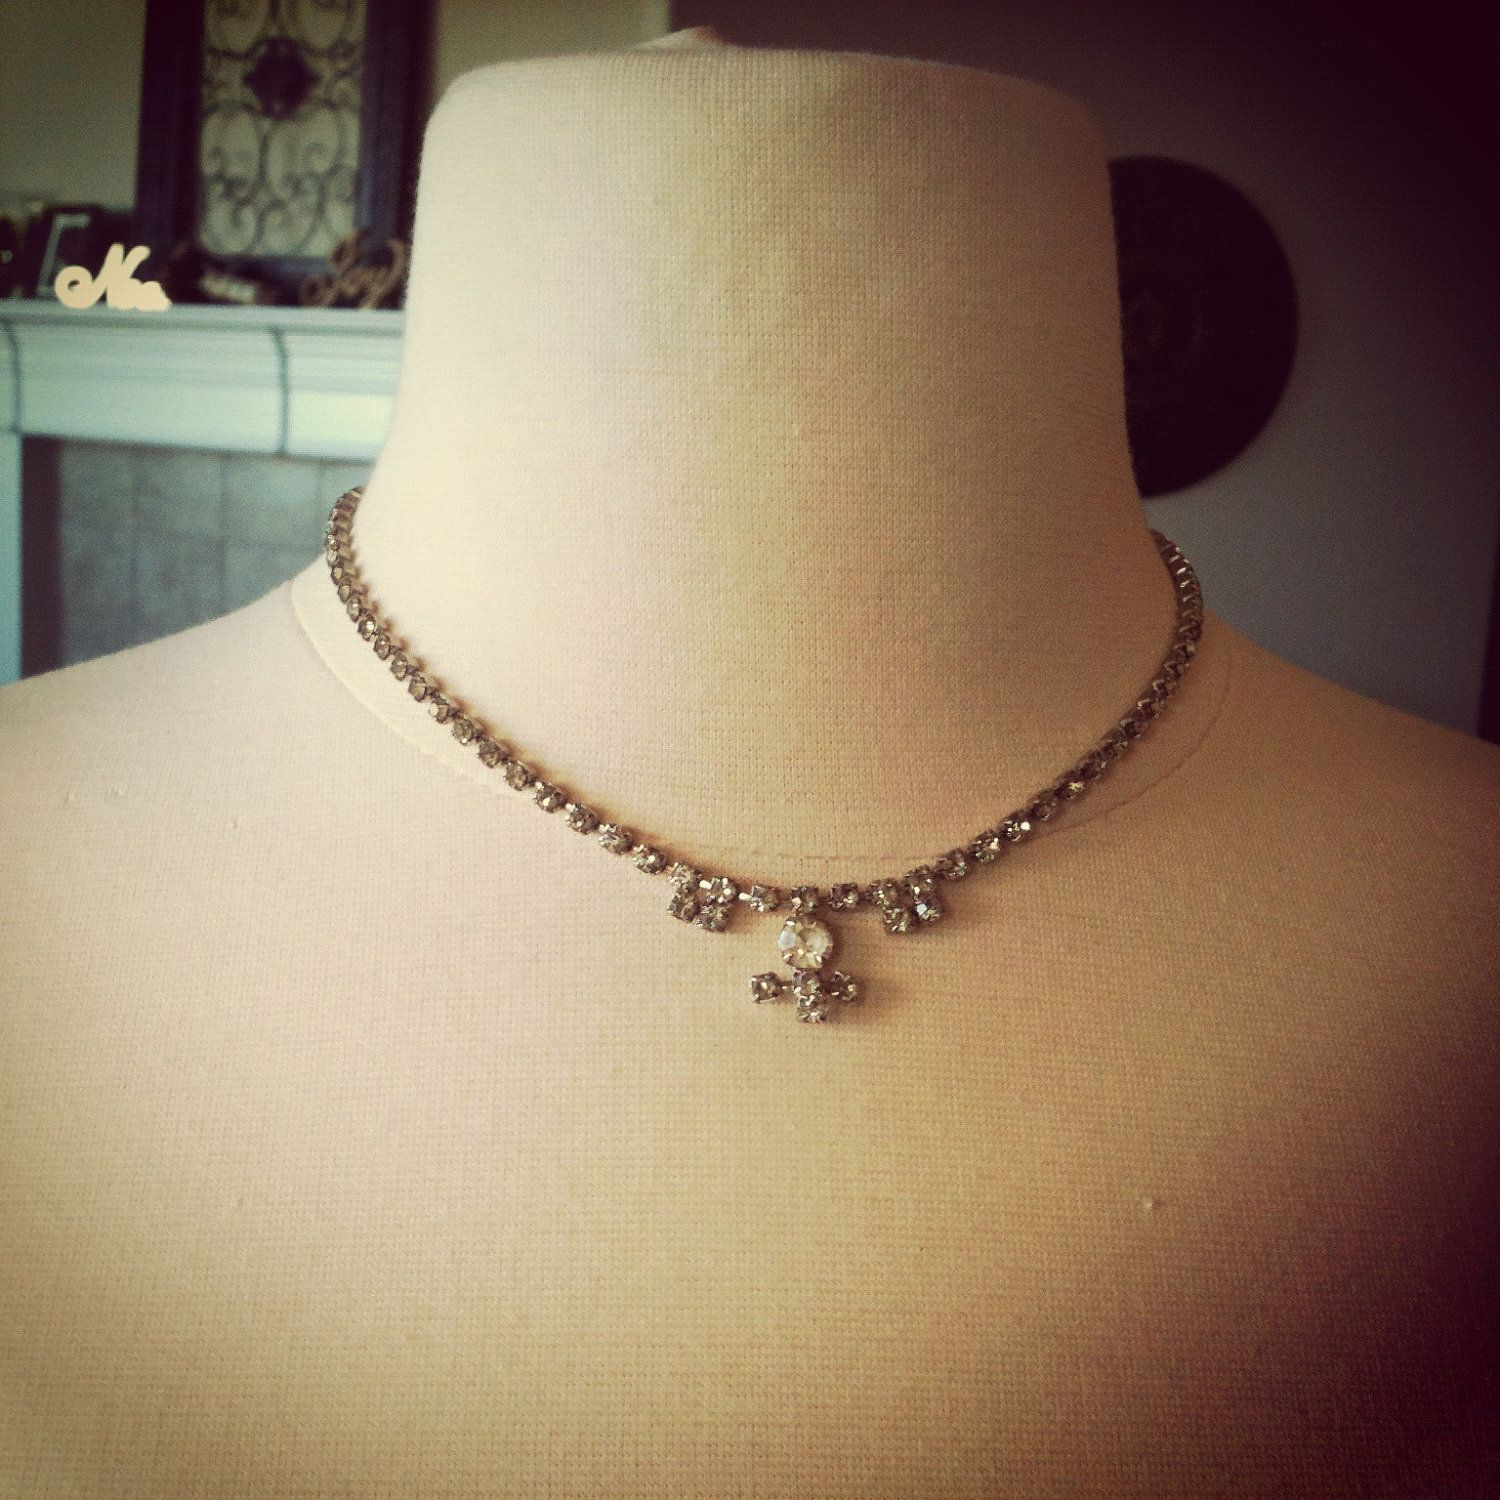 Vintage Rhinestone Choker Necklace - Feminine and Classy Necklace. $30.00, via Etsy.